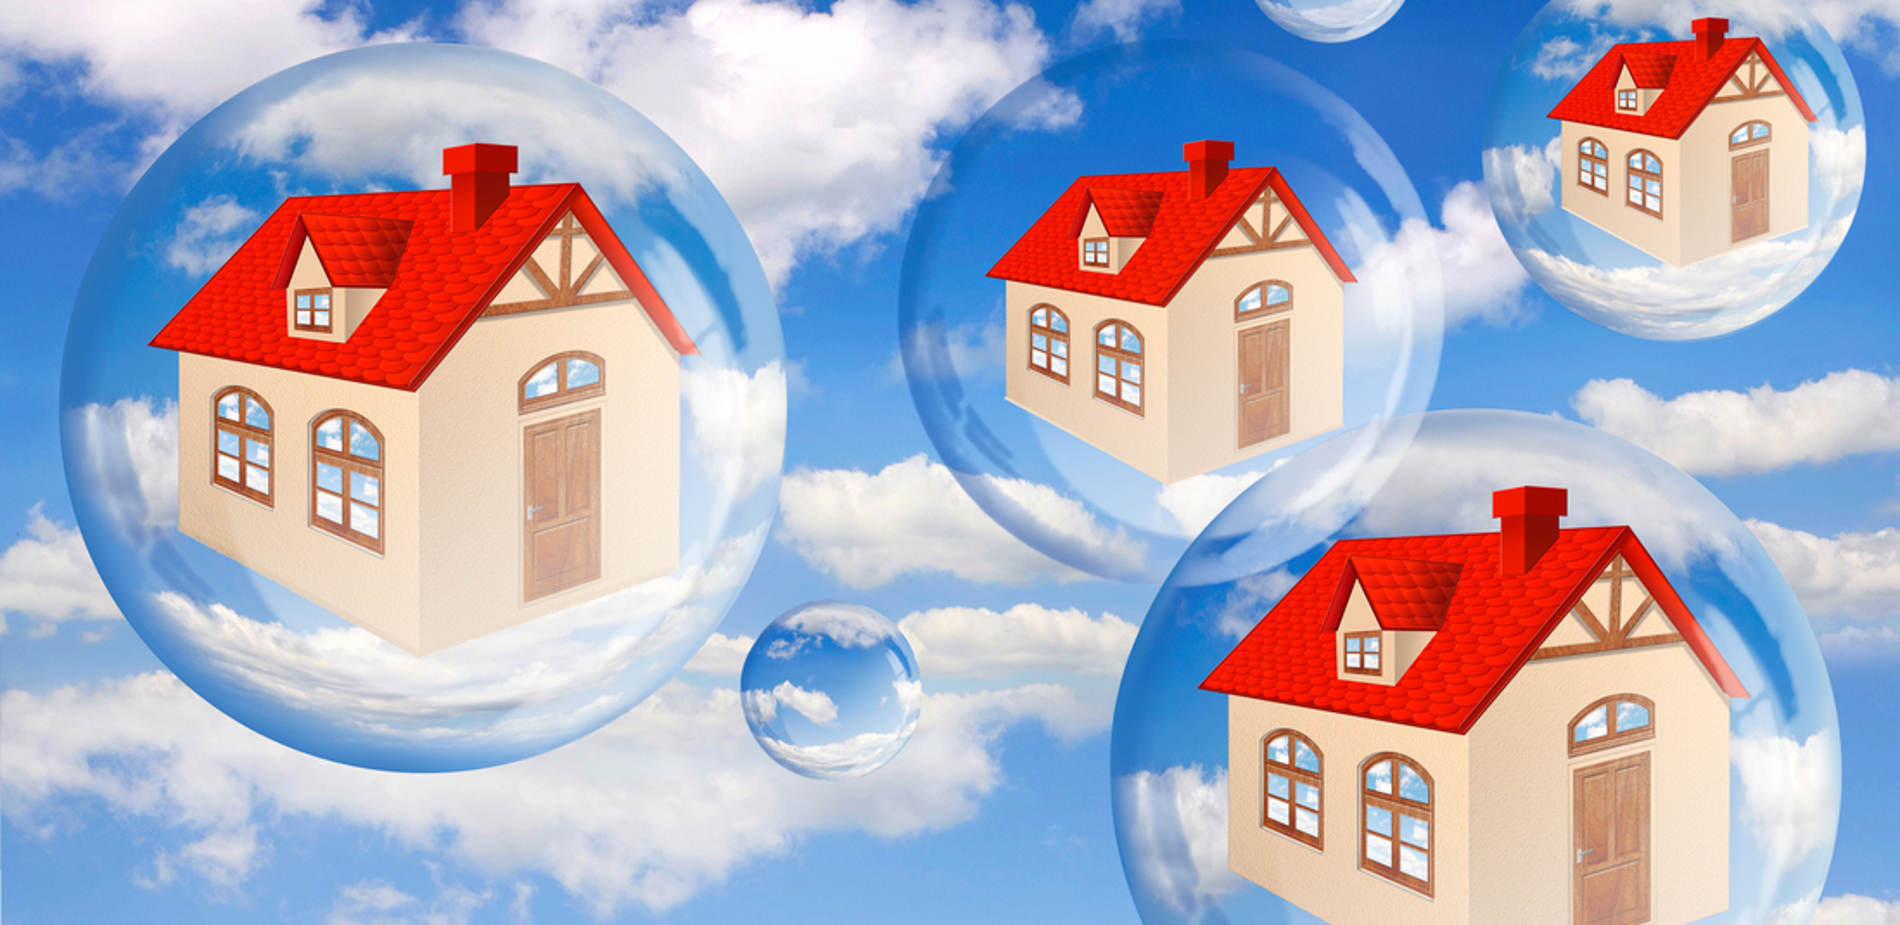 housing bubble burst As mortgages become easier to acquire, demand for nice housing increases, which leads to an increase in prices (a bubble) this is literally what caused the 2008 housing bubble it's good to see someone who apparently has little to know understanding of the housing bubble or of markets in general offering up comments on the subject.